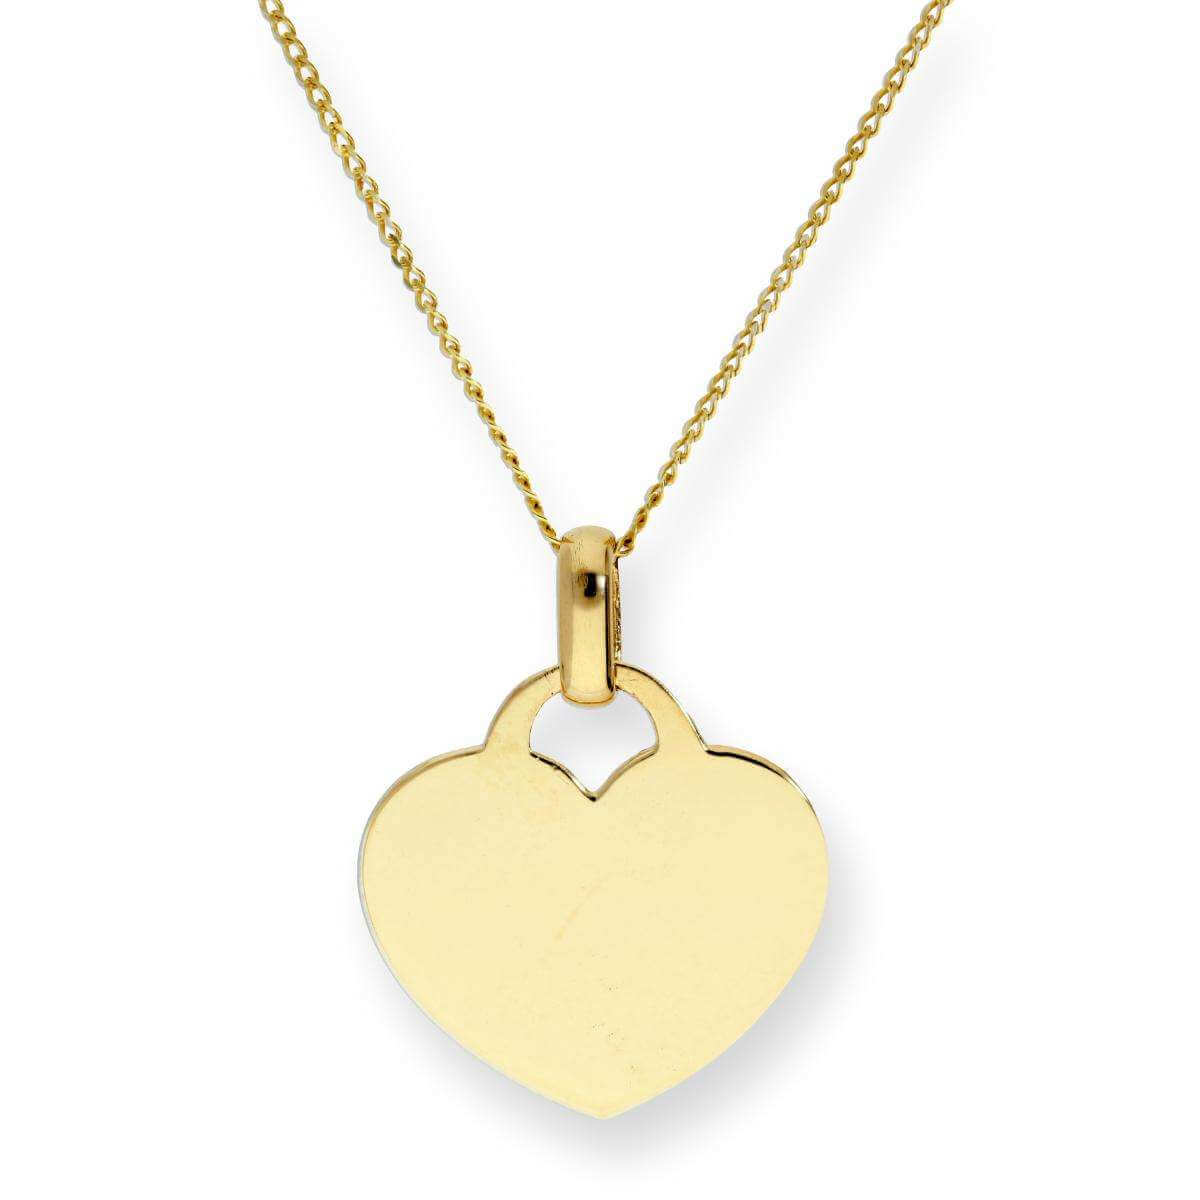 9ct Gold Engravable Heart Pendant on Chain 16 - 18 Inches